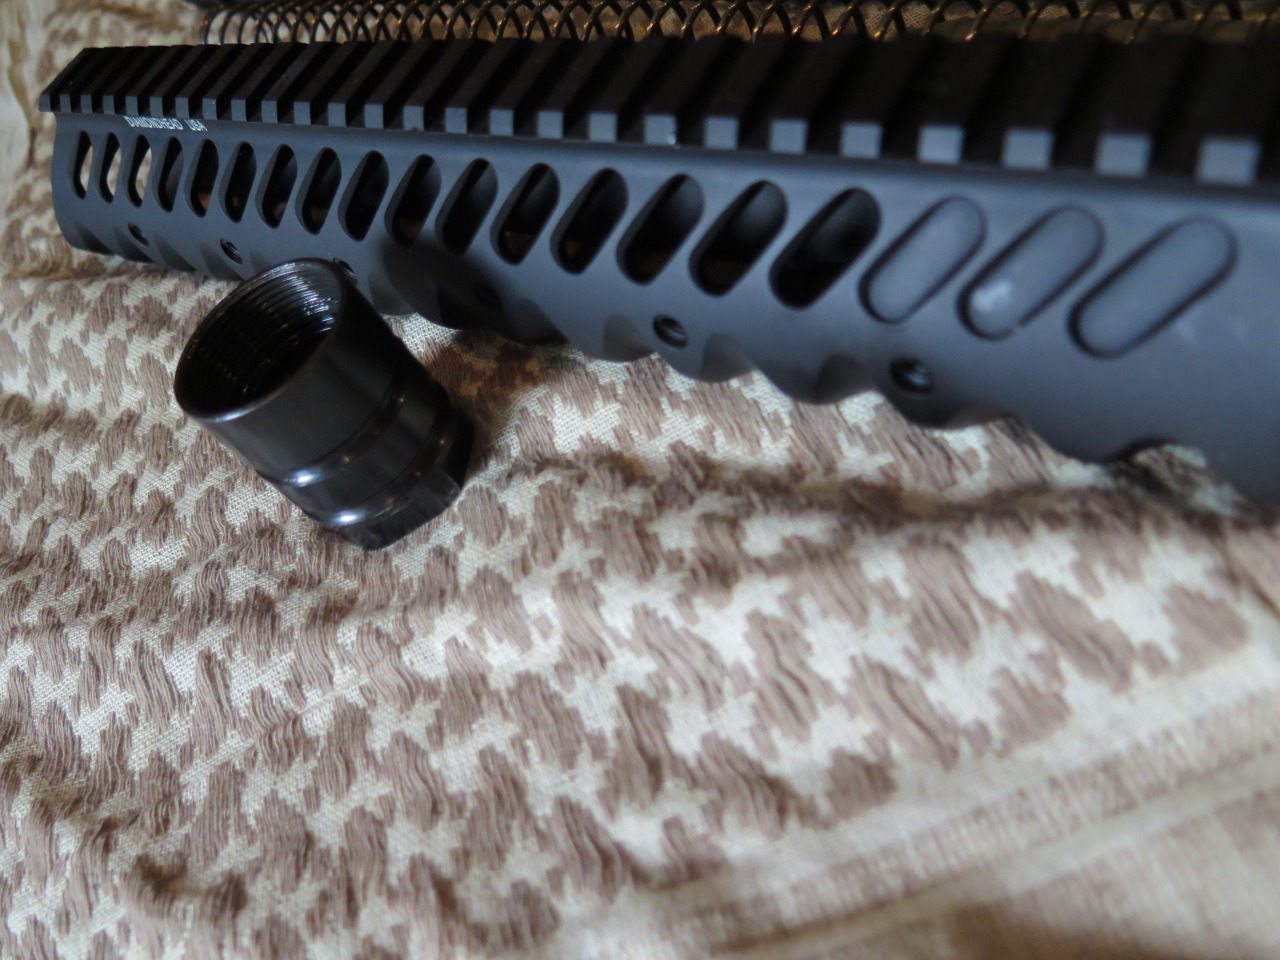 Diamondhead Handguard and Proprietary Barrel Nut